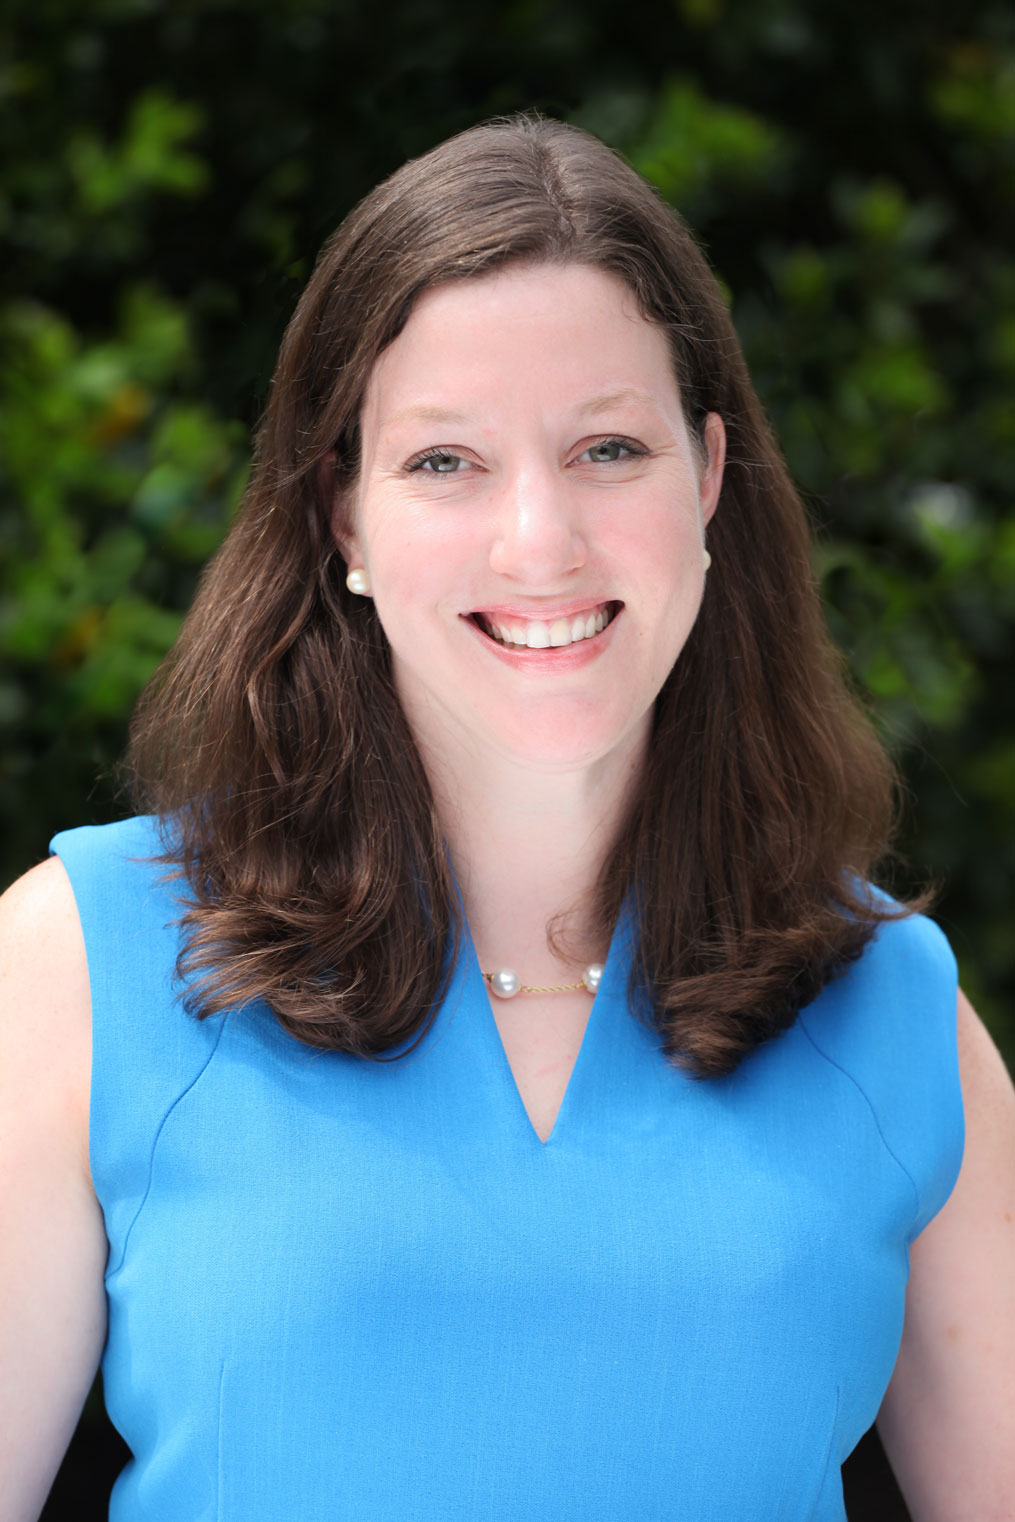 Photo of Susan Smith, Corporate